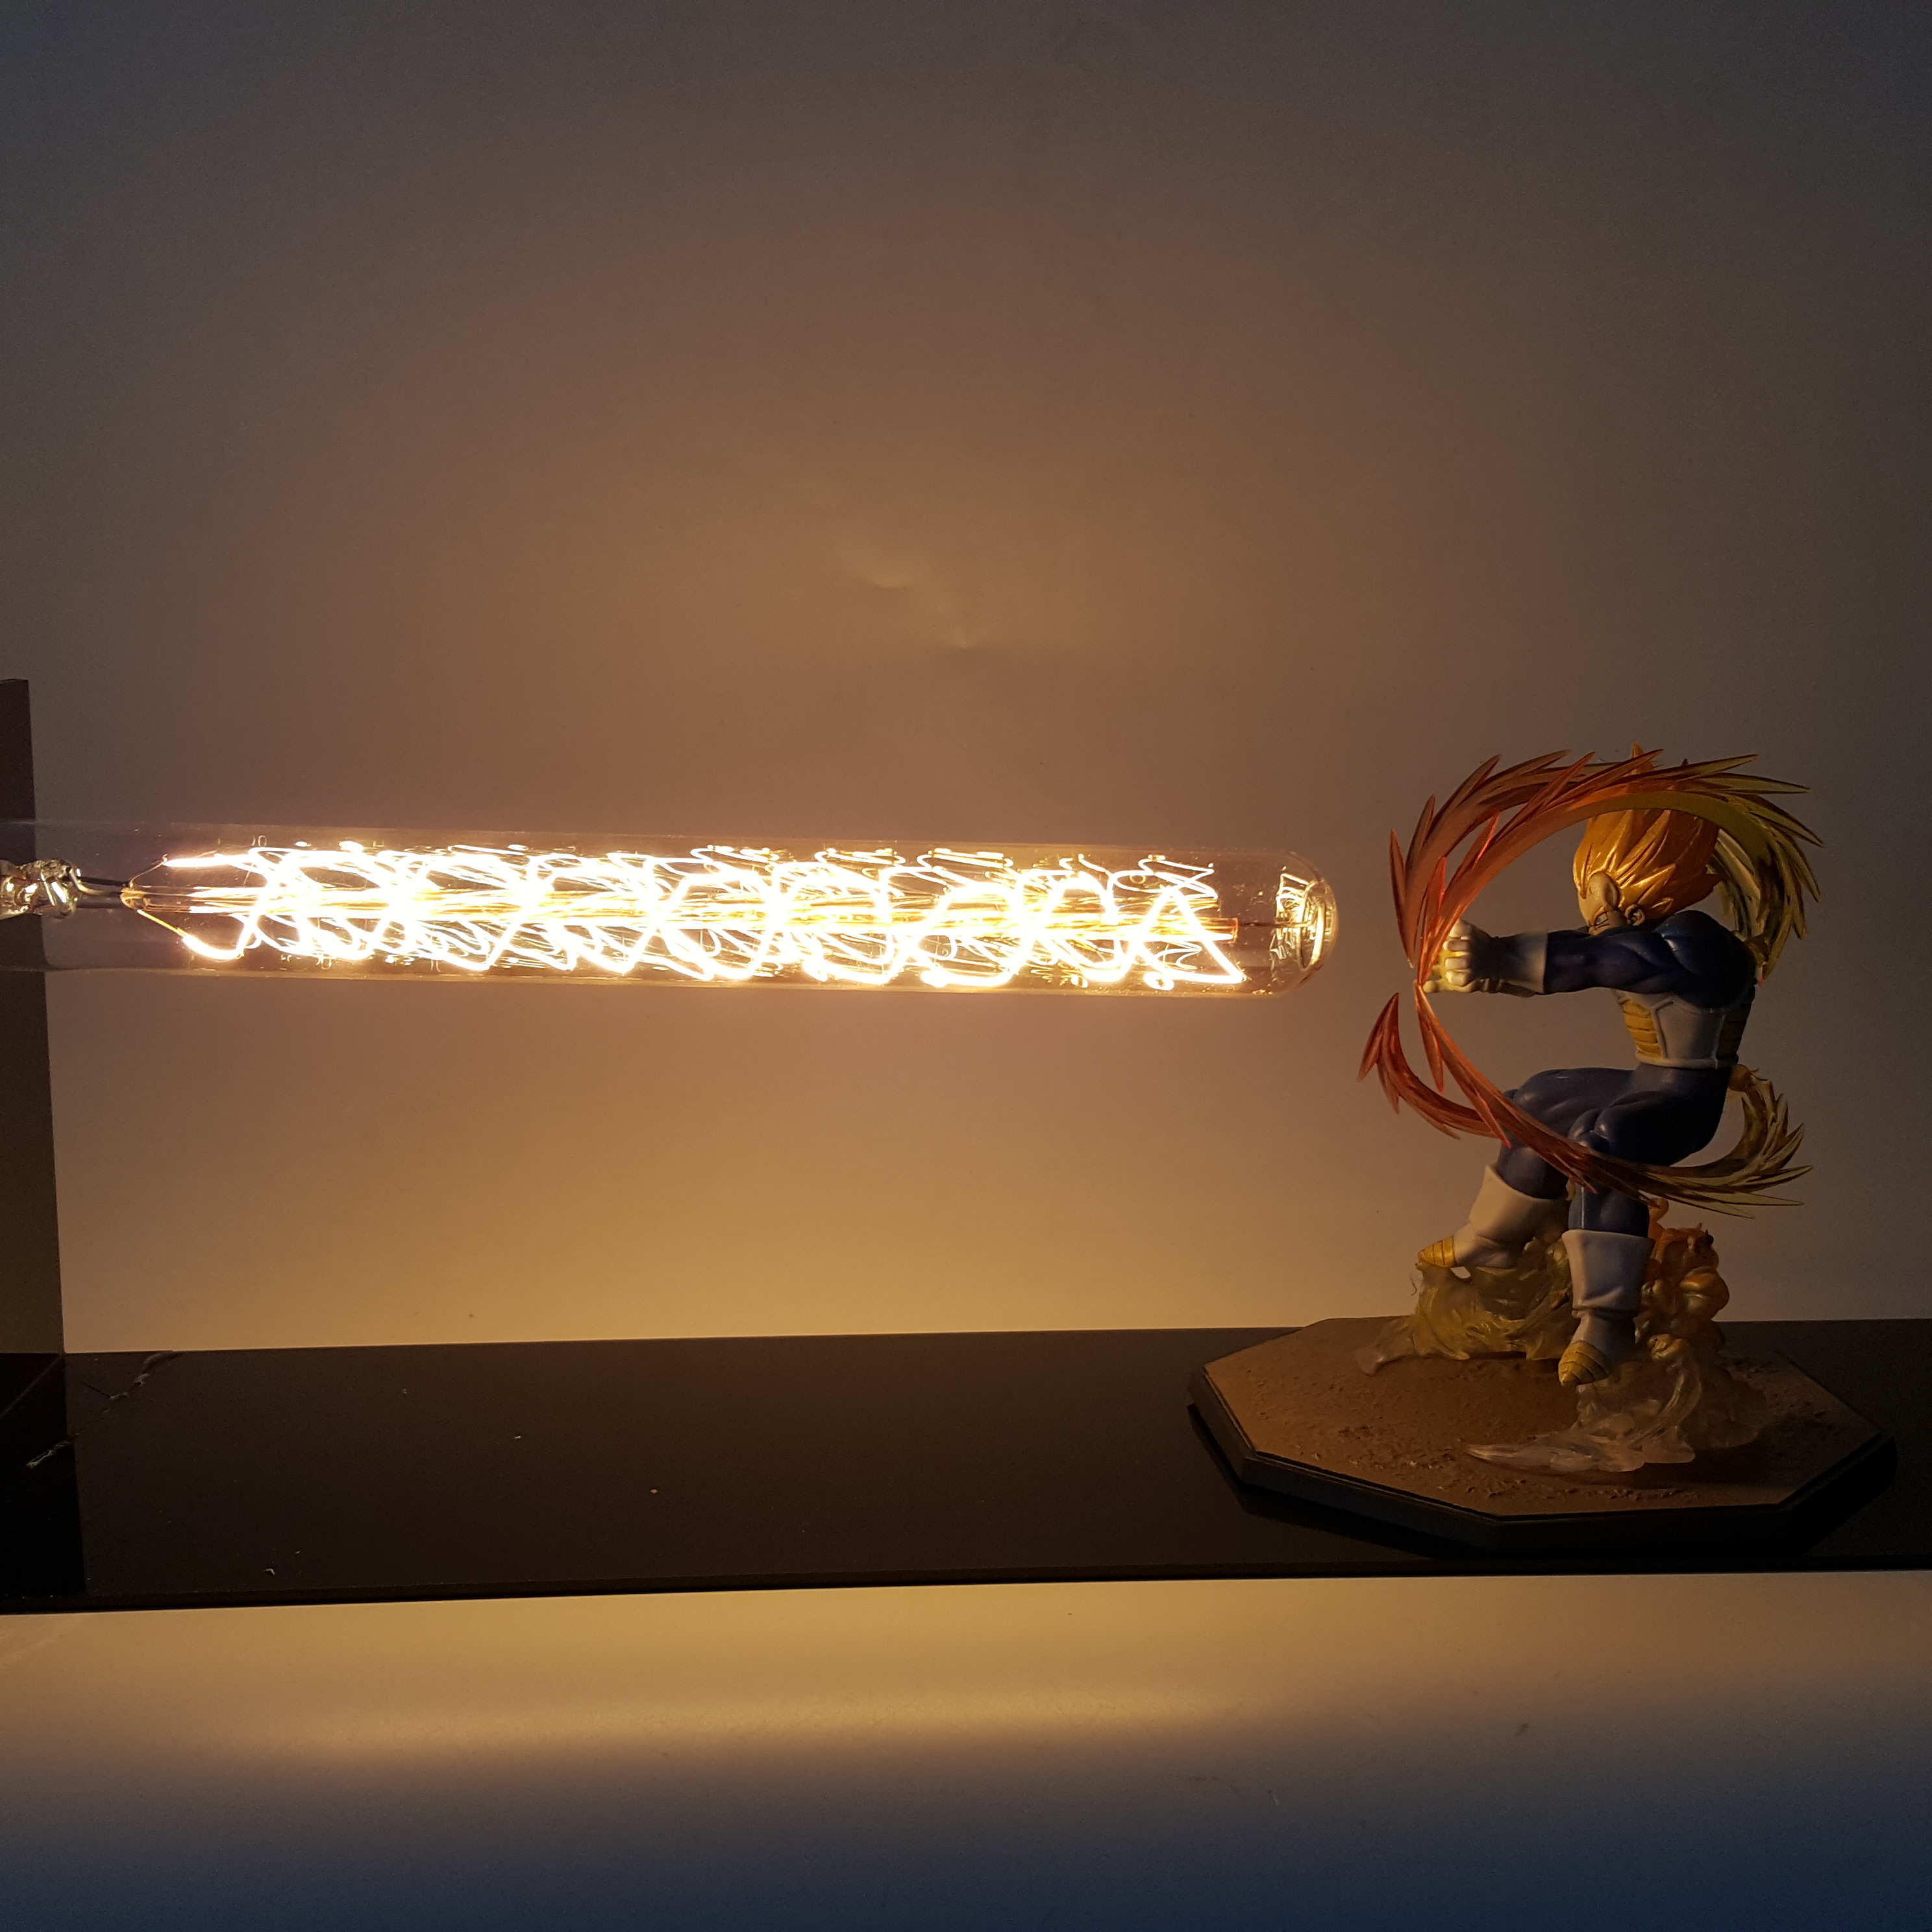 Dragon Lamps For Sale Details About Dragon Ball Z Super Saiyan Vegeta Final Flash Attack Led Lamp Action Figure